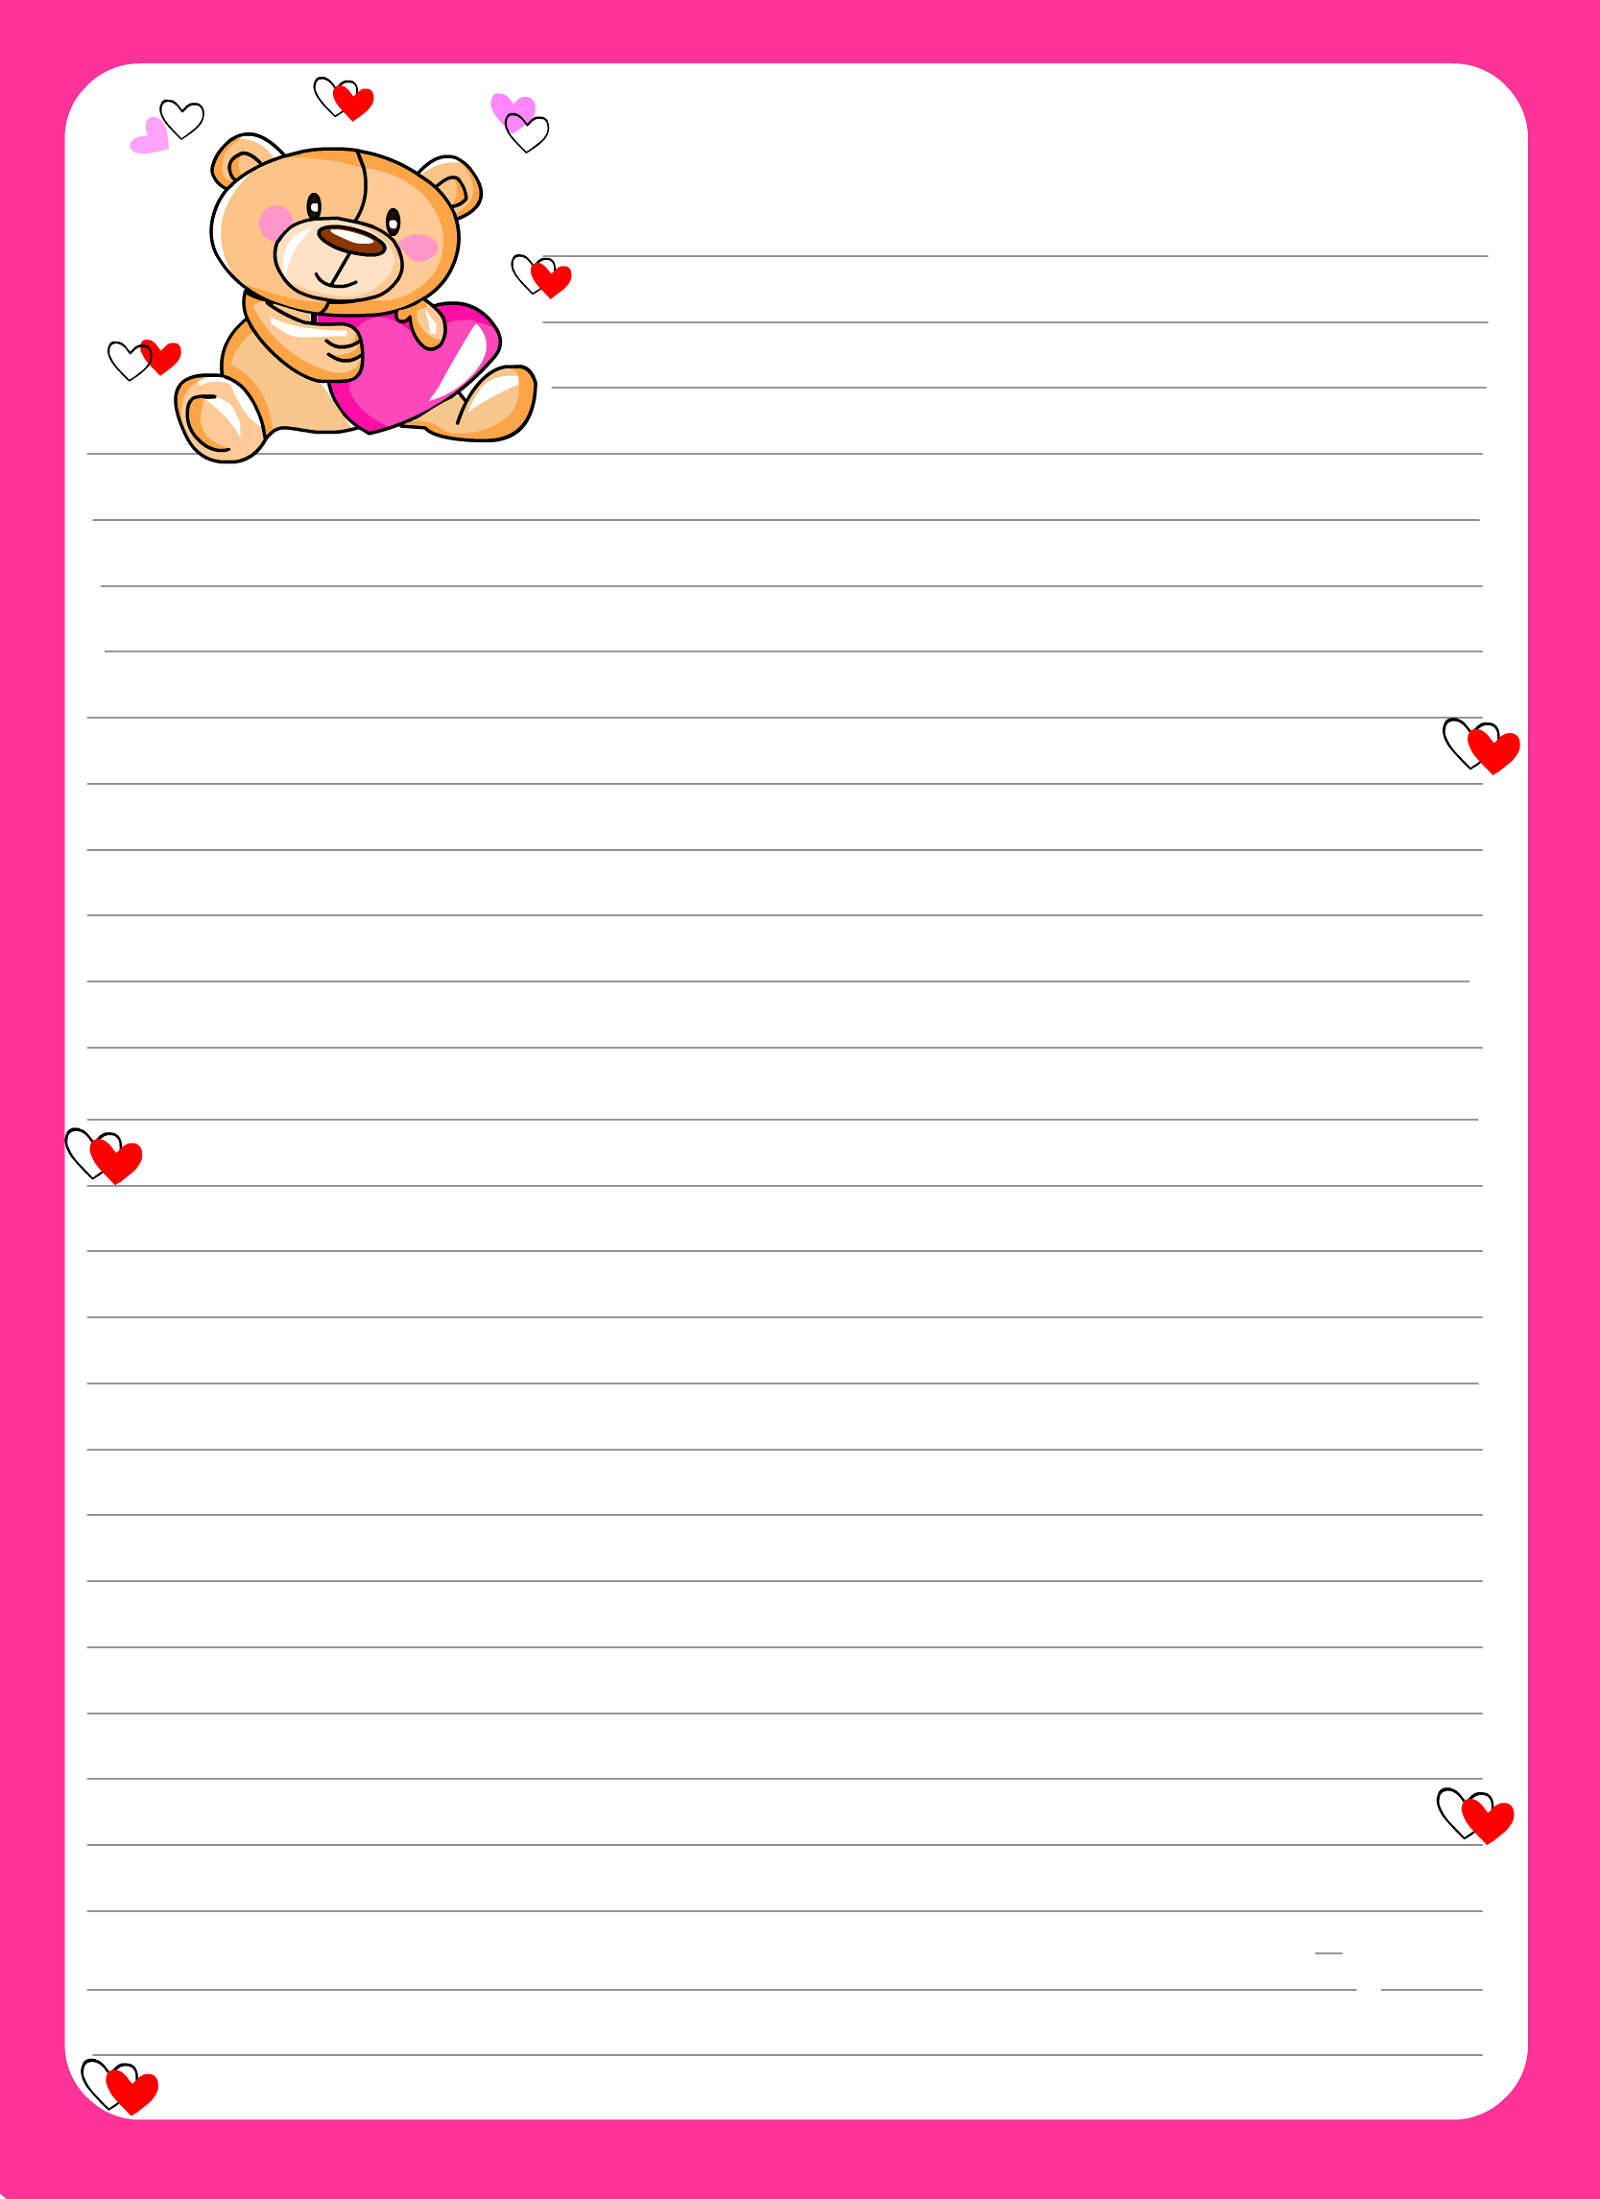 Lined Notebook Paper Template pink borders – Learning Printable